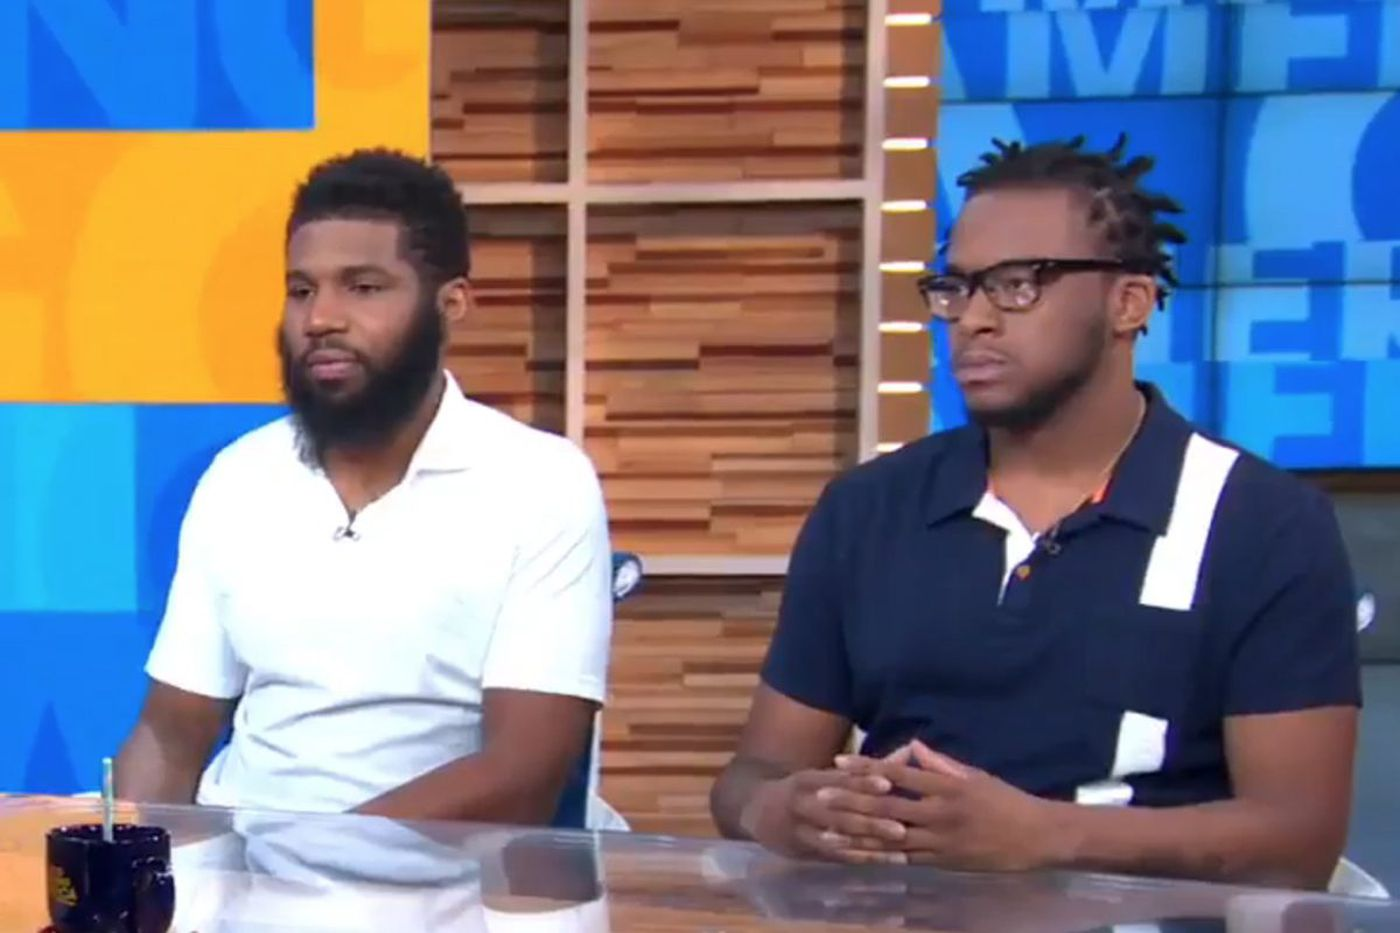 Men arrested at Philadelphia Starbucks appear on GMA: 'It's not just a black people thing, this is a people thing'